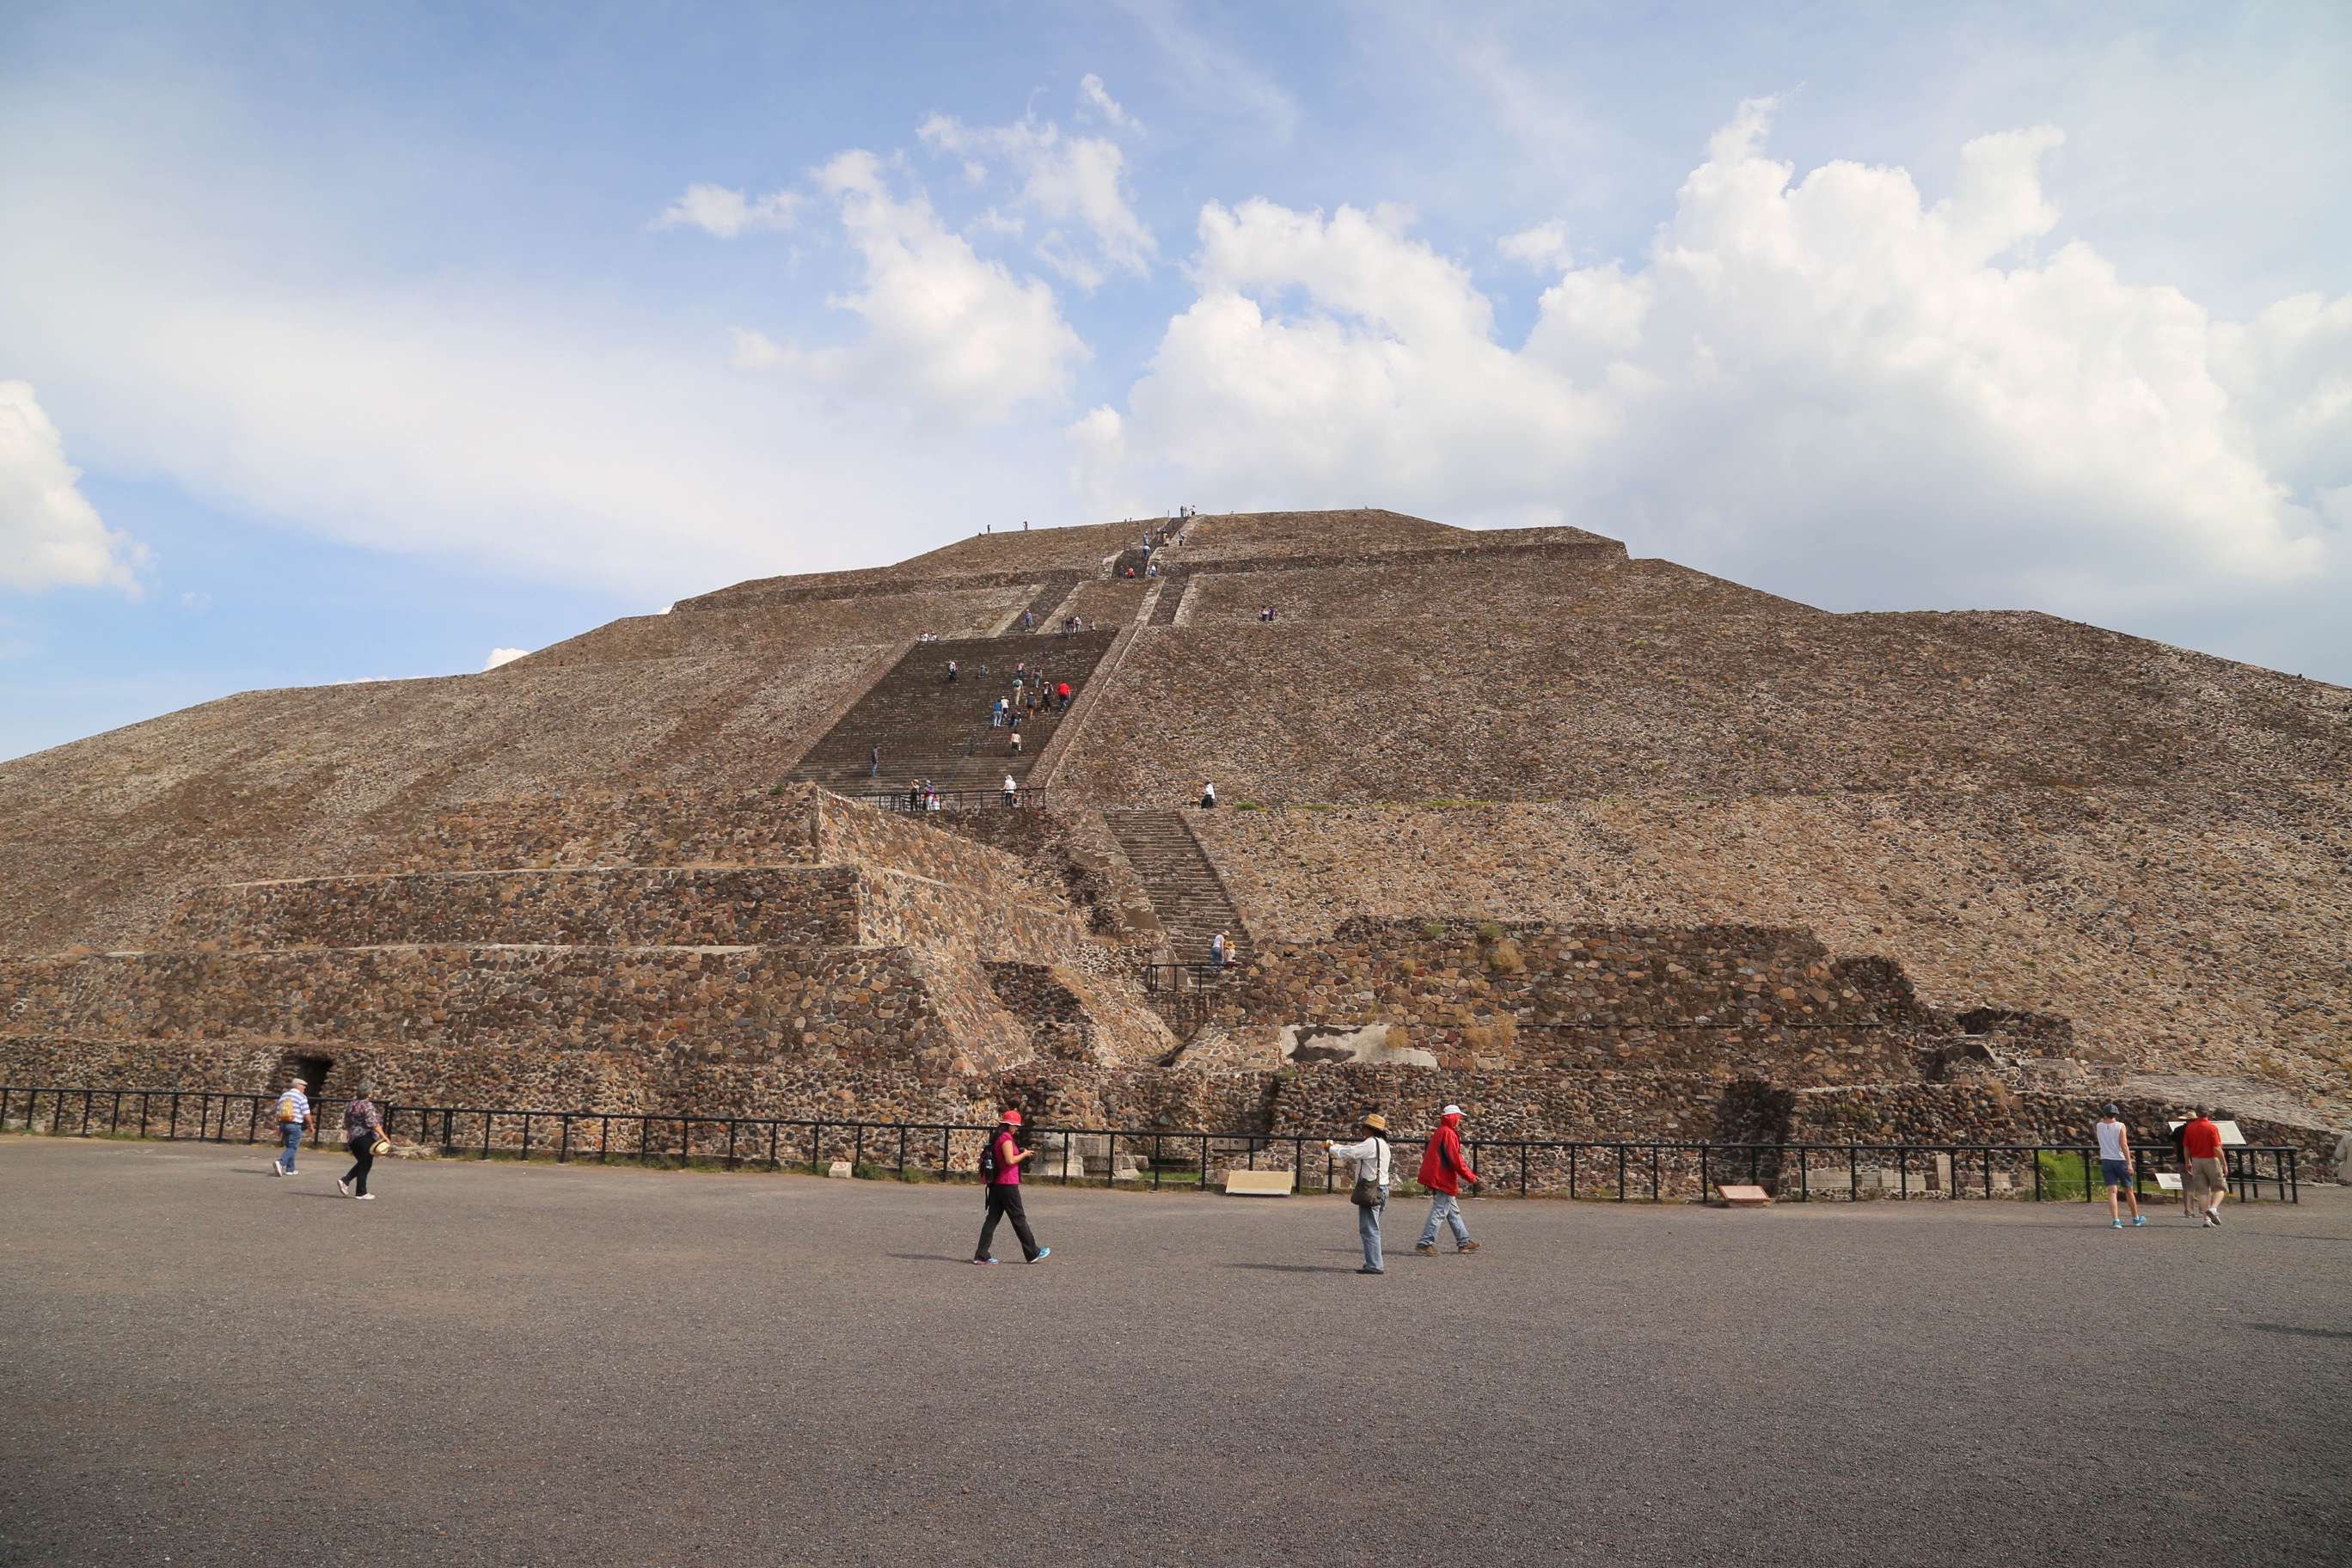 The scale at Teotihuacan is huge and to think this site was conceived and constructed by people who had no metal tools, horses or other draft animals boggles the mind.